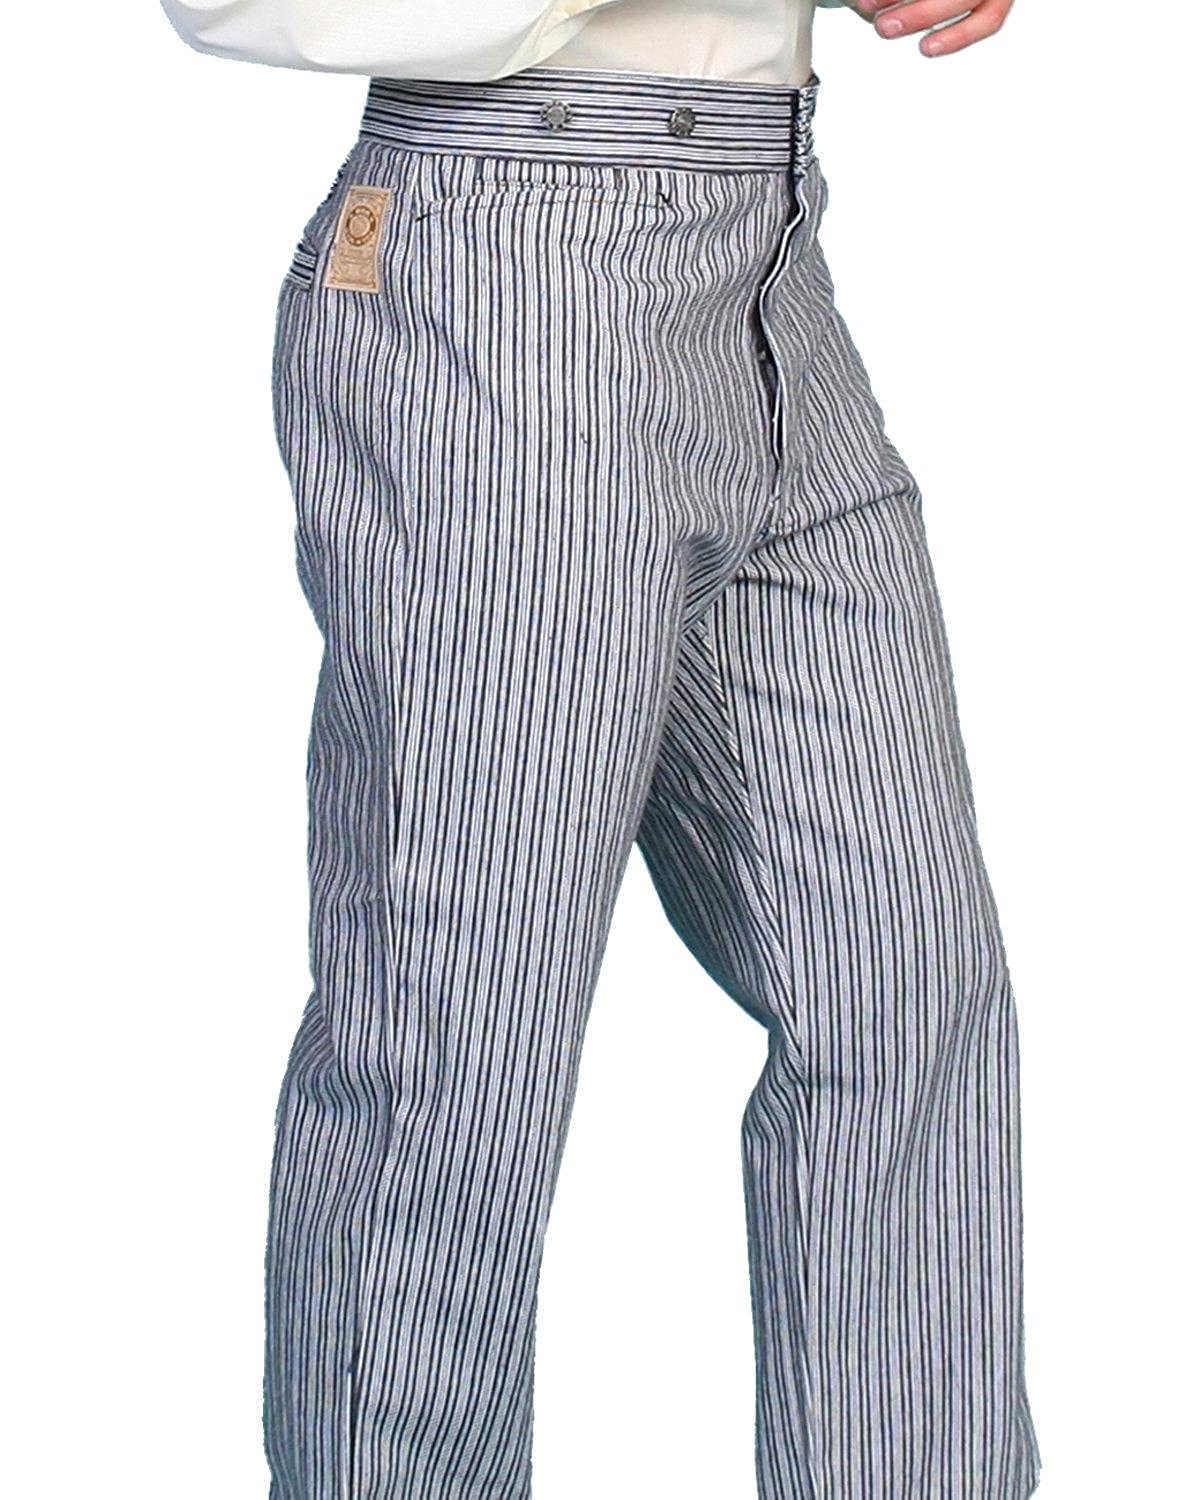 Edwardian Men's Pants, Trousers, Overalls Scully Wahmaker Mens Wahmaker Railhead Stripe Pants $99.99 AT vintagedancer.com